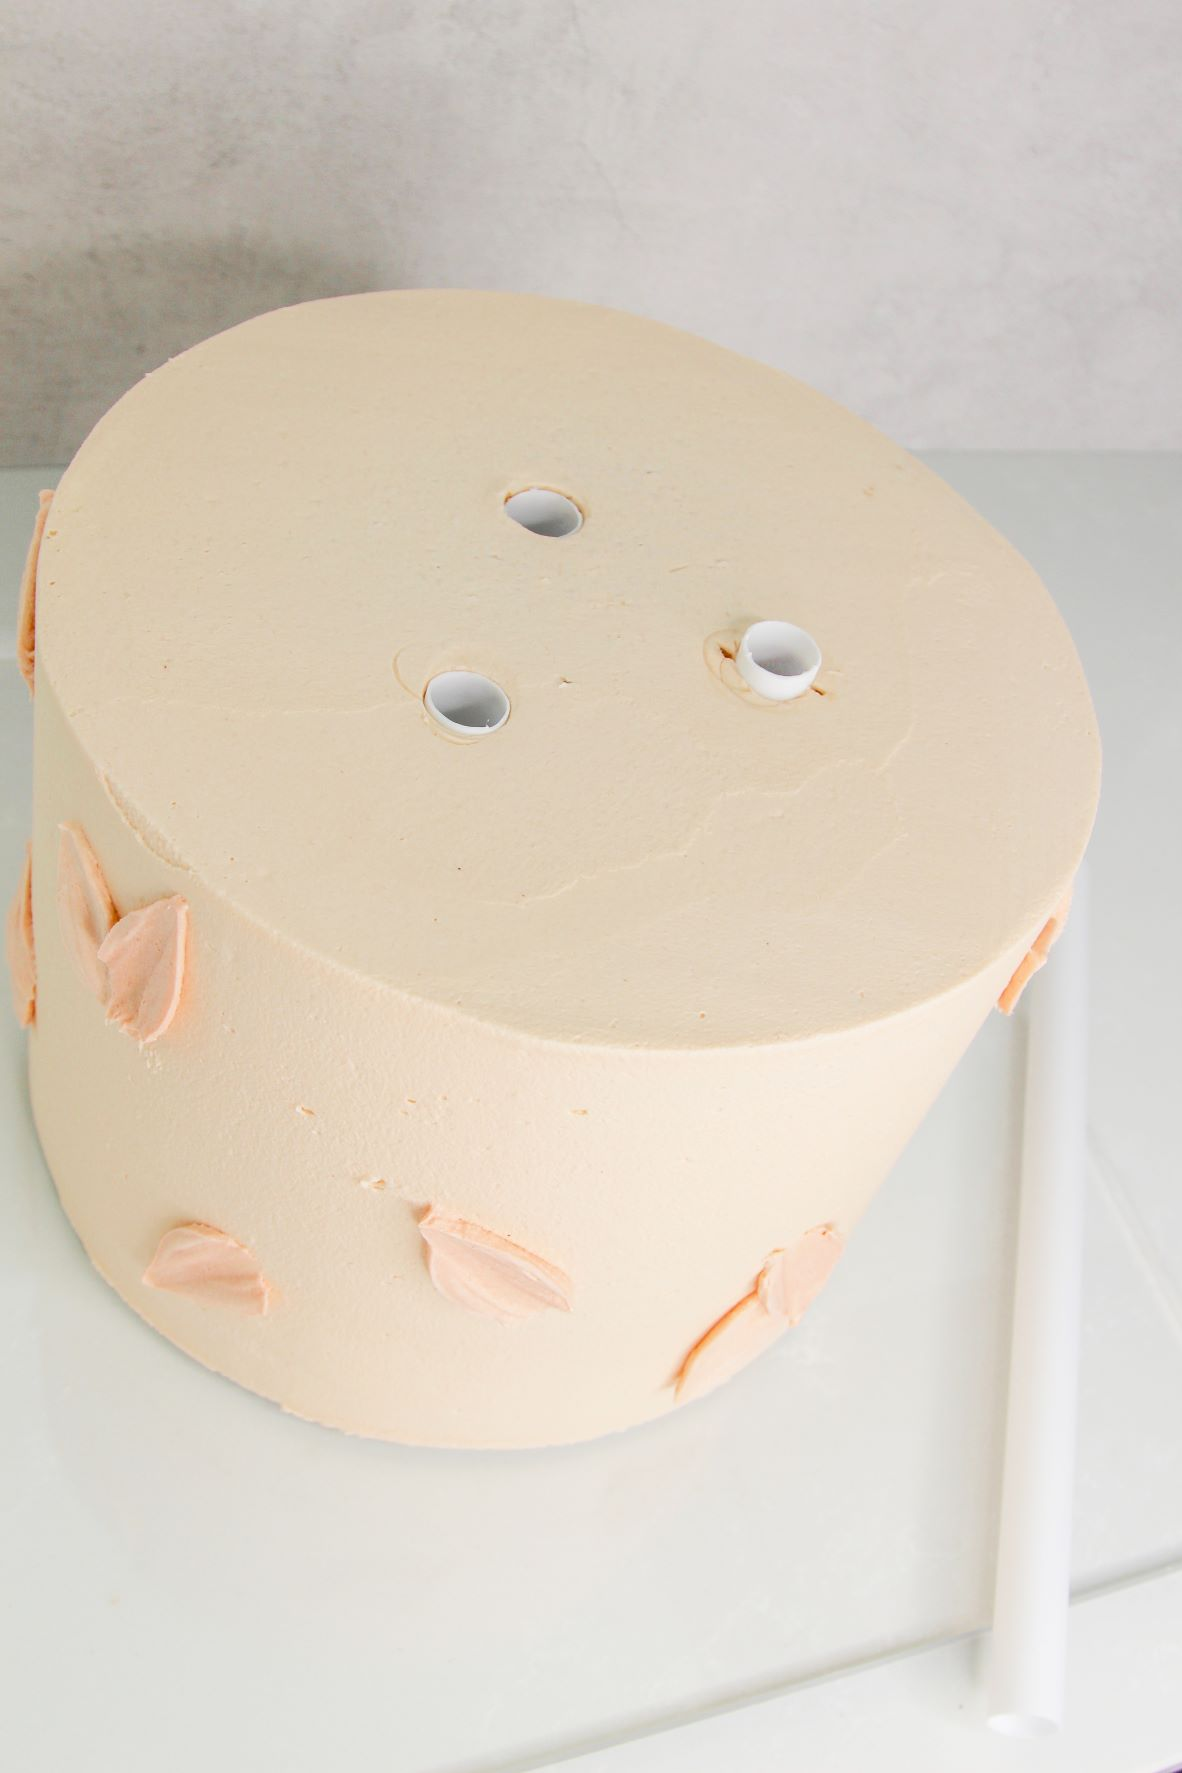 Assemble a sturdy tiered cake